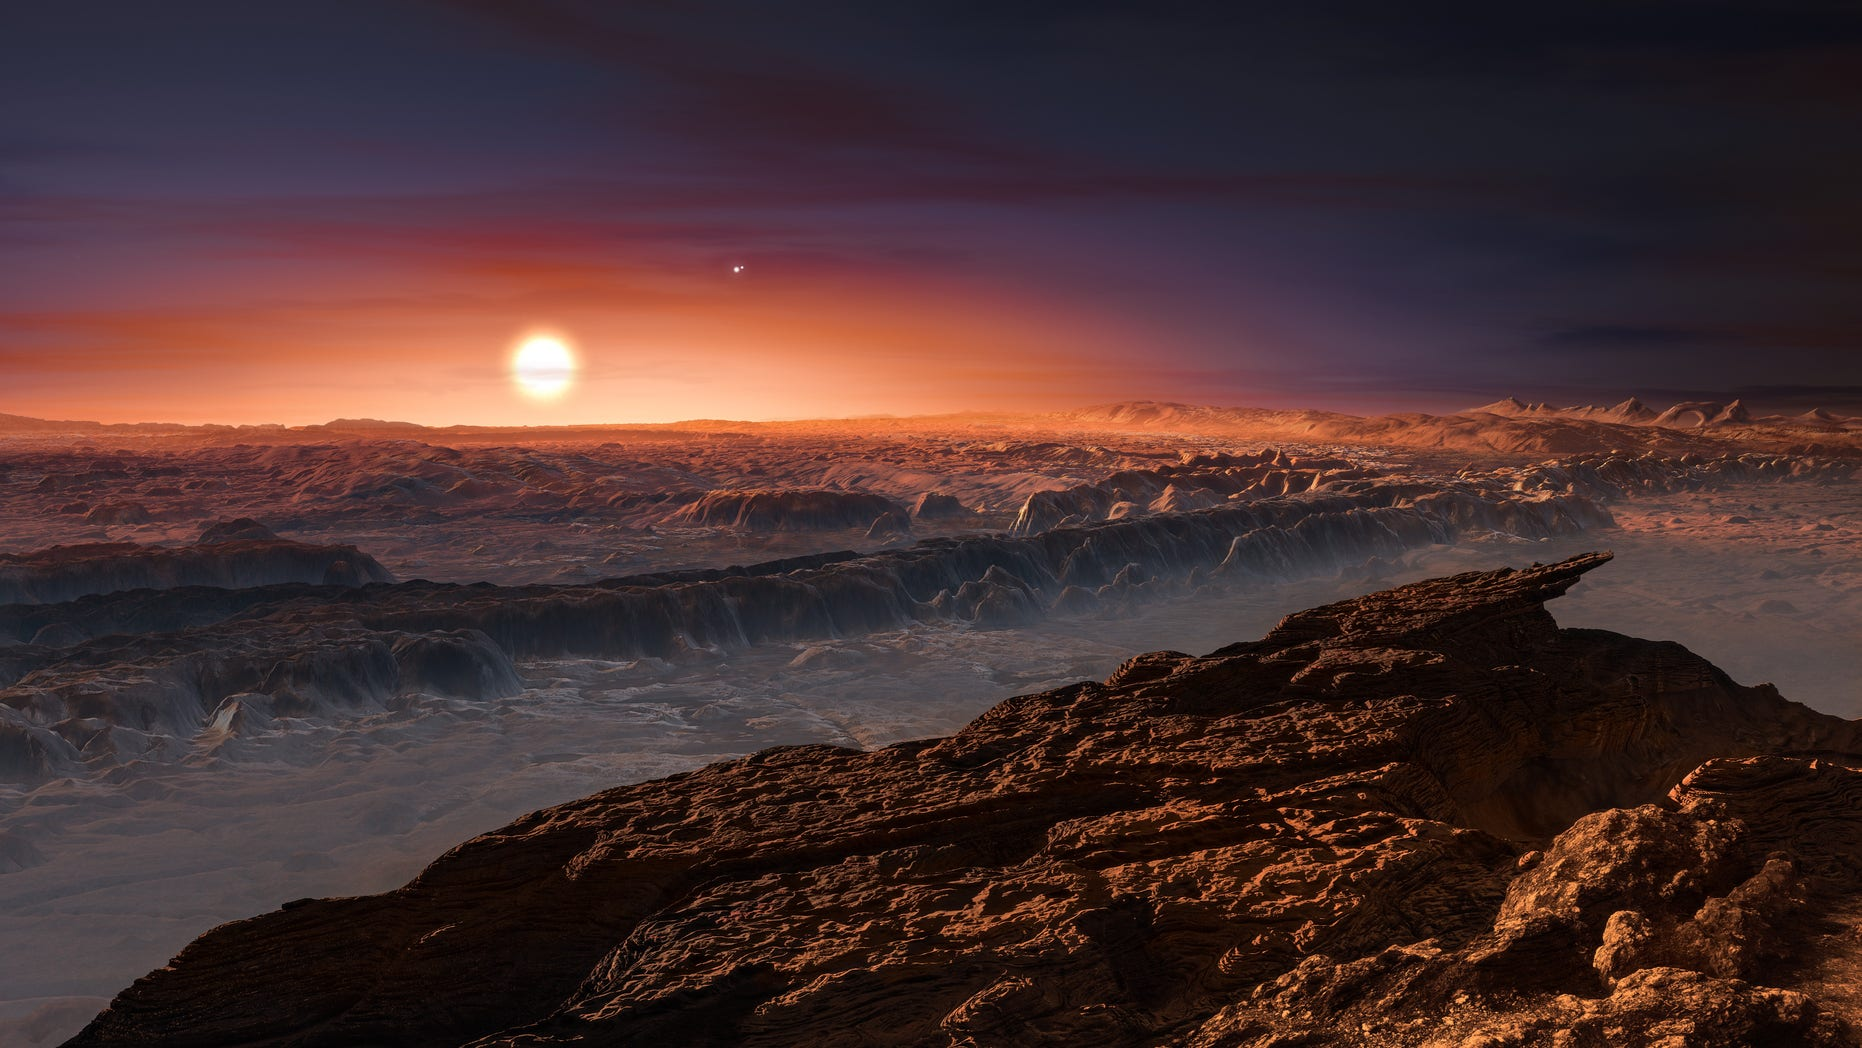 An artist's impression shows a view of the surface of the planet Proxima b orbiting the red dwarf star Proxima Centauri, the closest star to the Solar System.